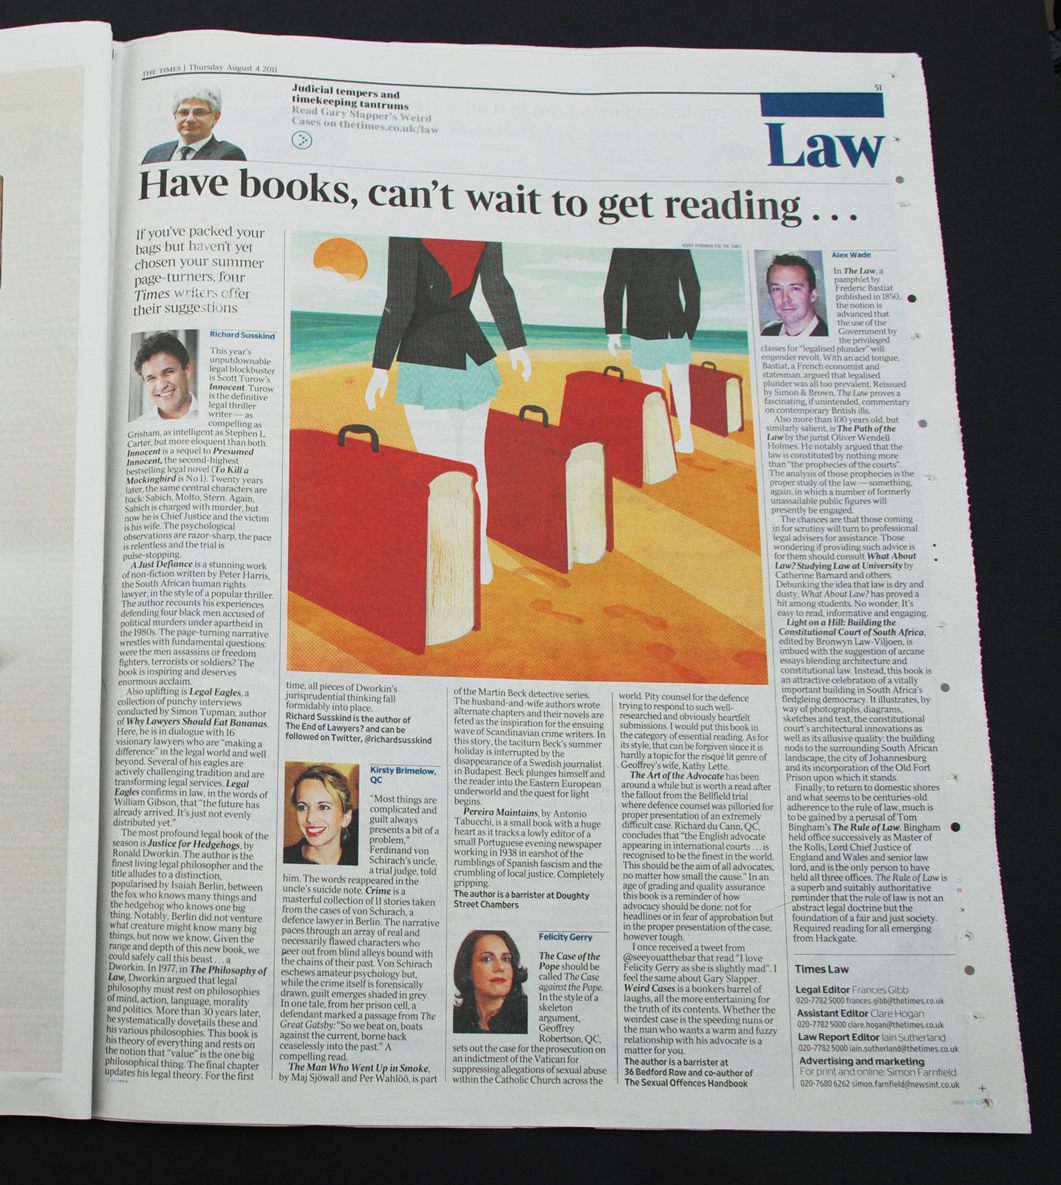 I have an illustration in The Times today! It accompanies an article about good reads for lawyers on their summer holidays. You can see my illustration in page 51 of the newspaper. You'll also be able to find it on the LAW pages of the website.